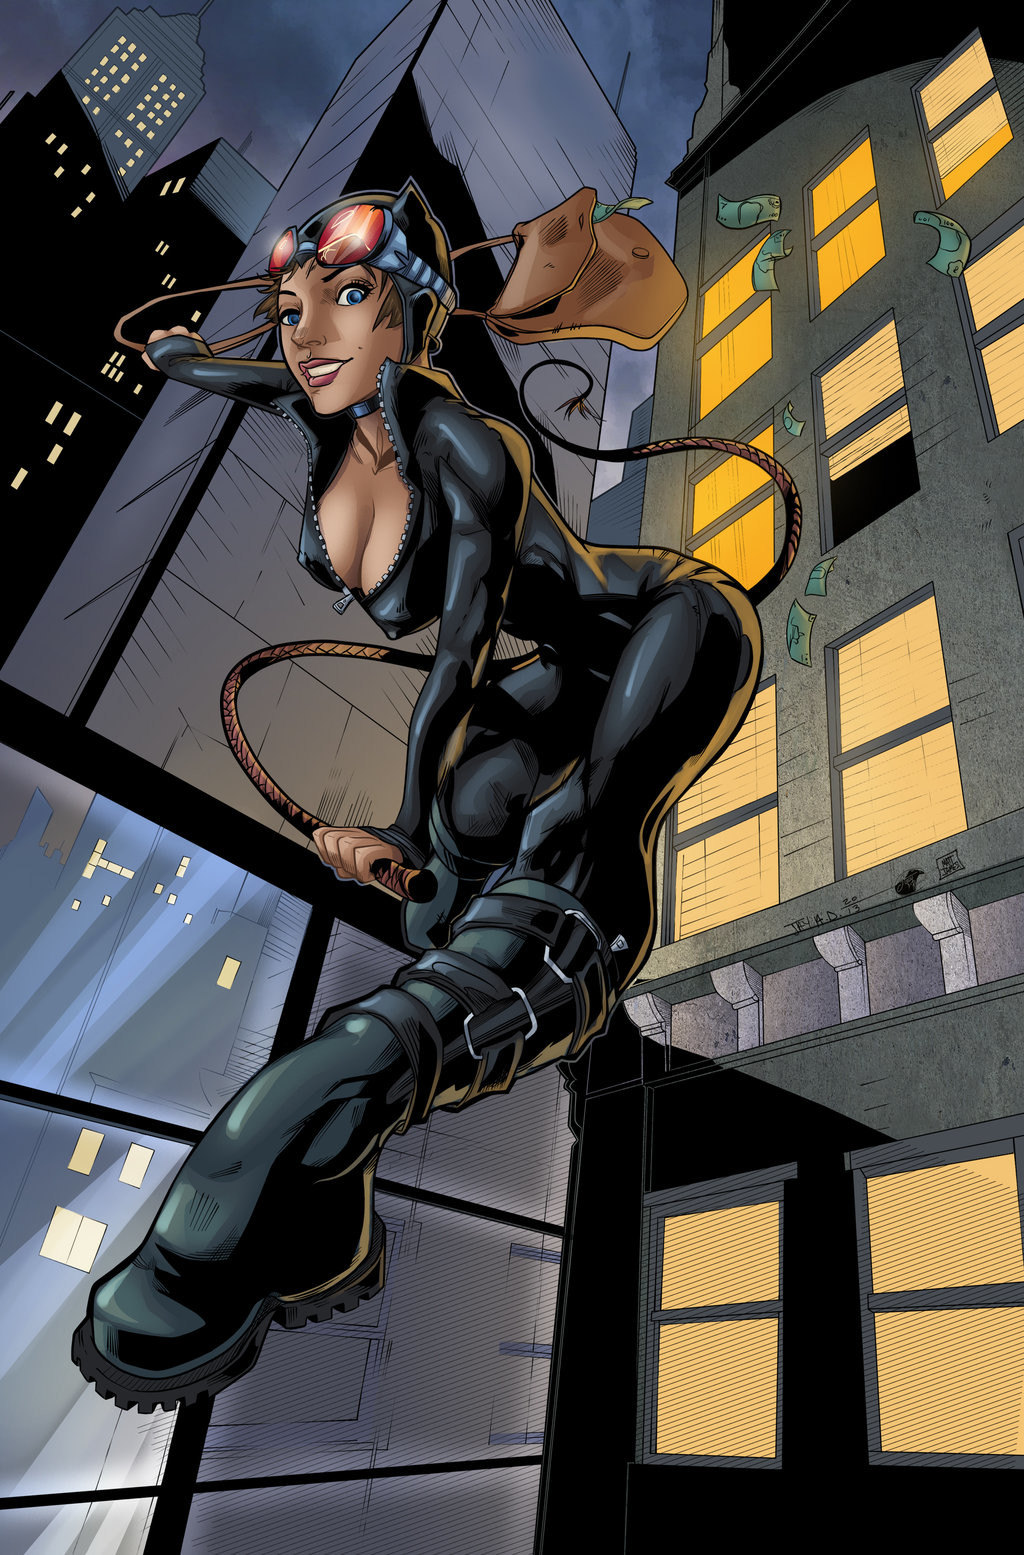 Catwoman - Gotham City's Finest